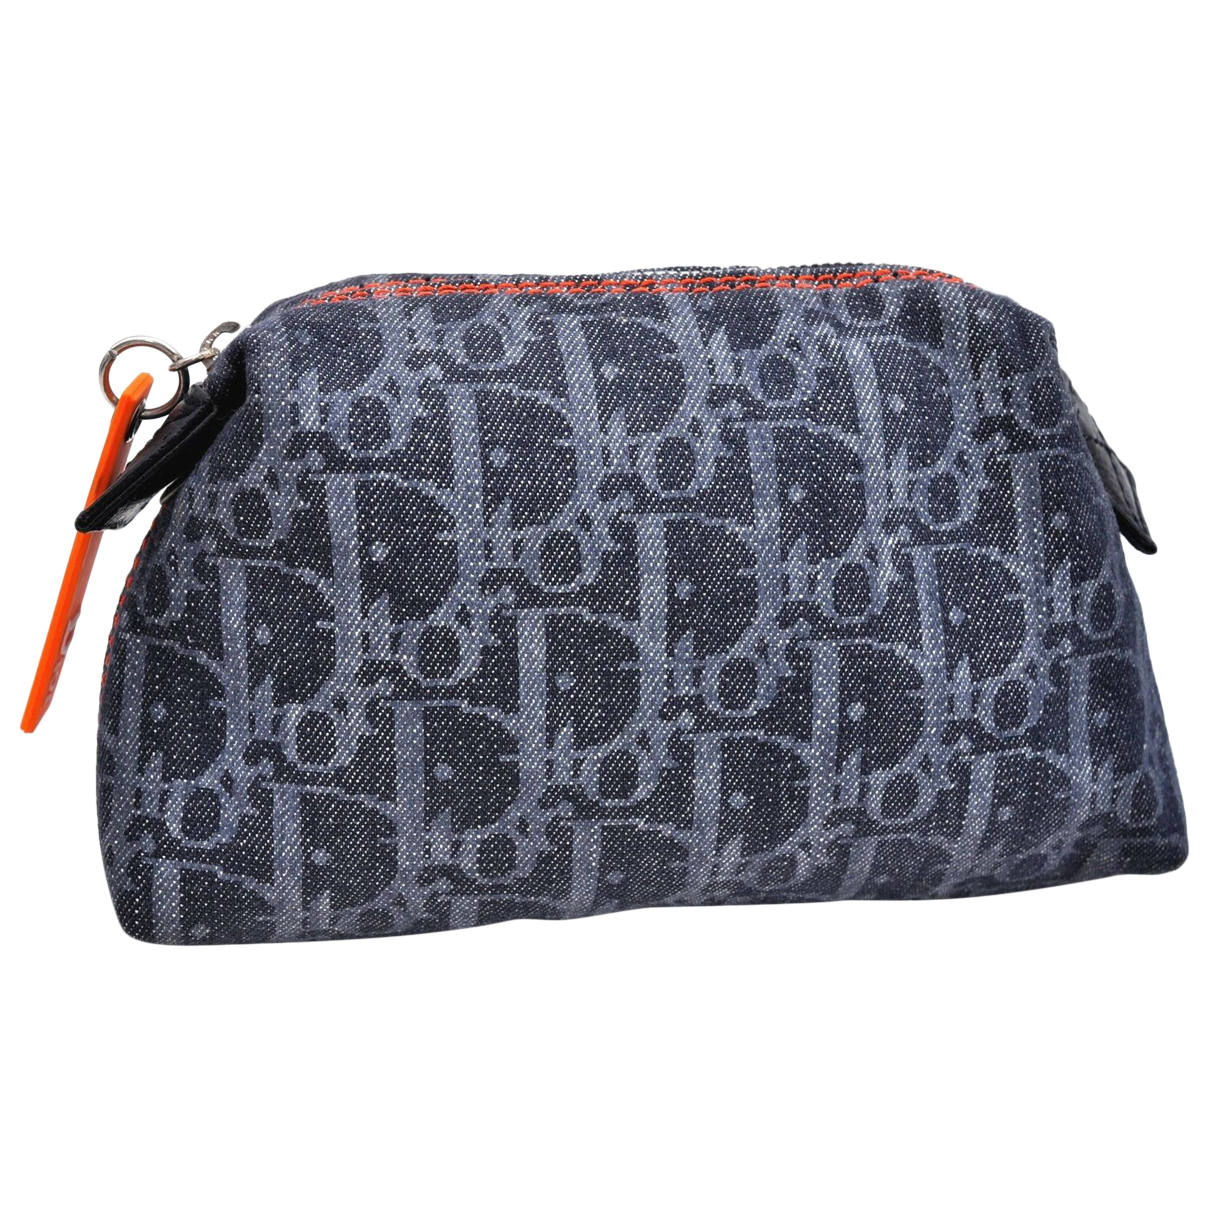 Dior N Blue Denim - Jeans Clutch bag for Women N